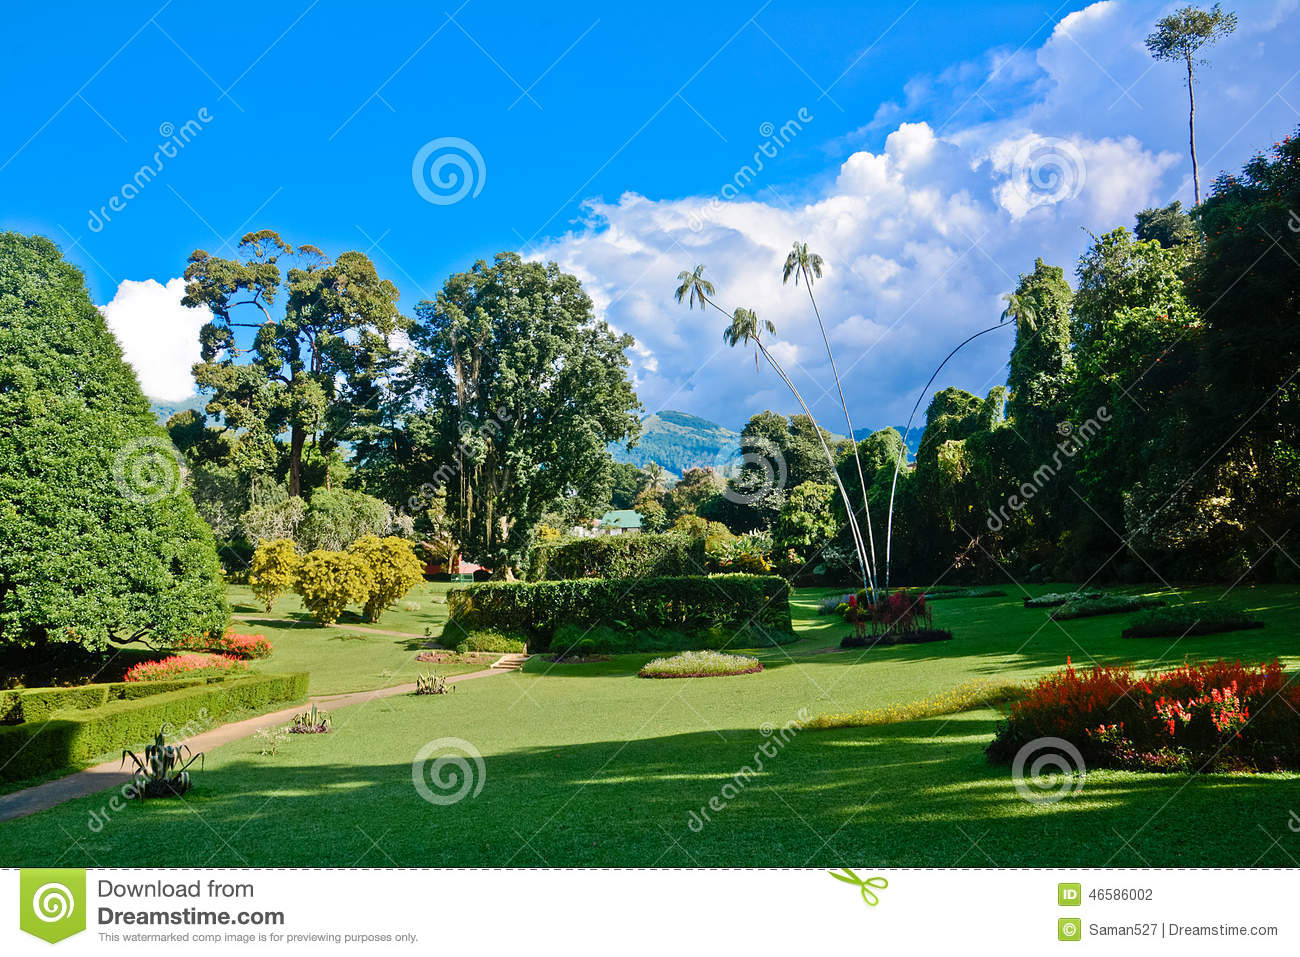 Royal botanical garden peradeniya sri lanka stock photo for Sri lankan landscaping plants